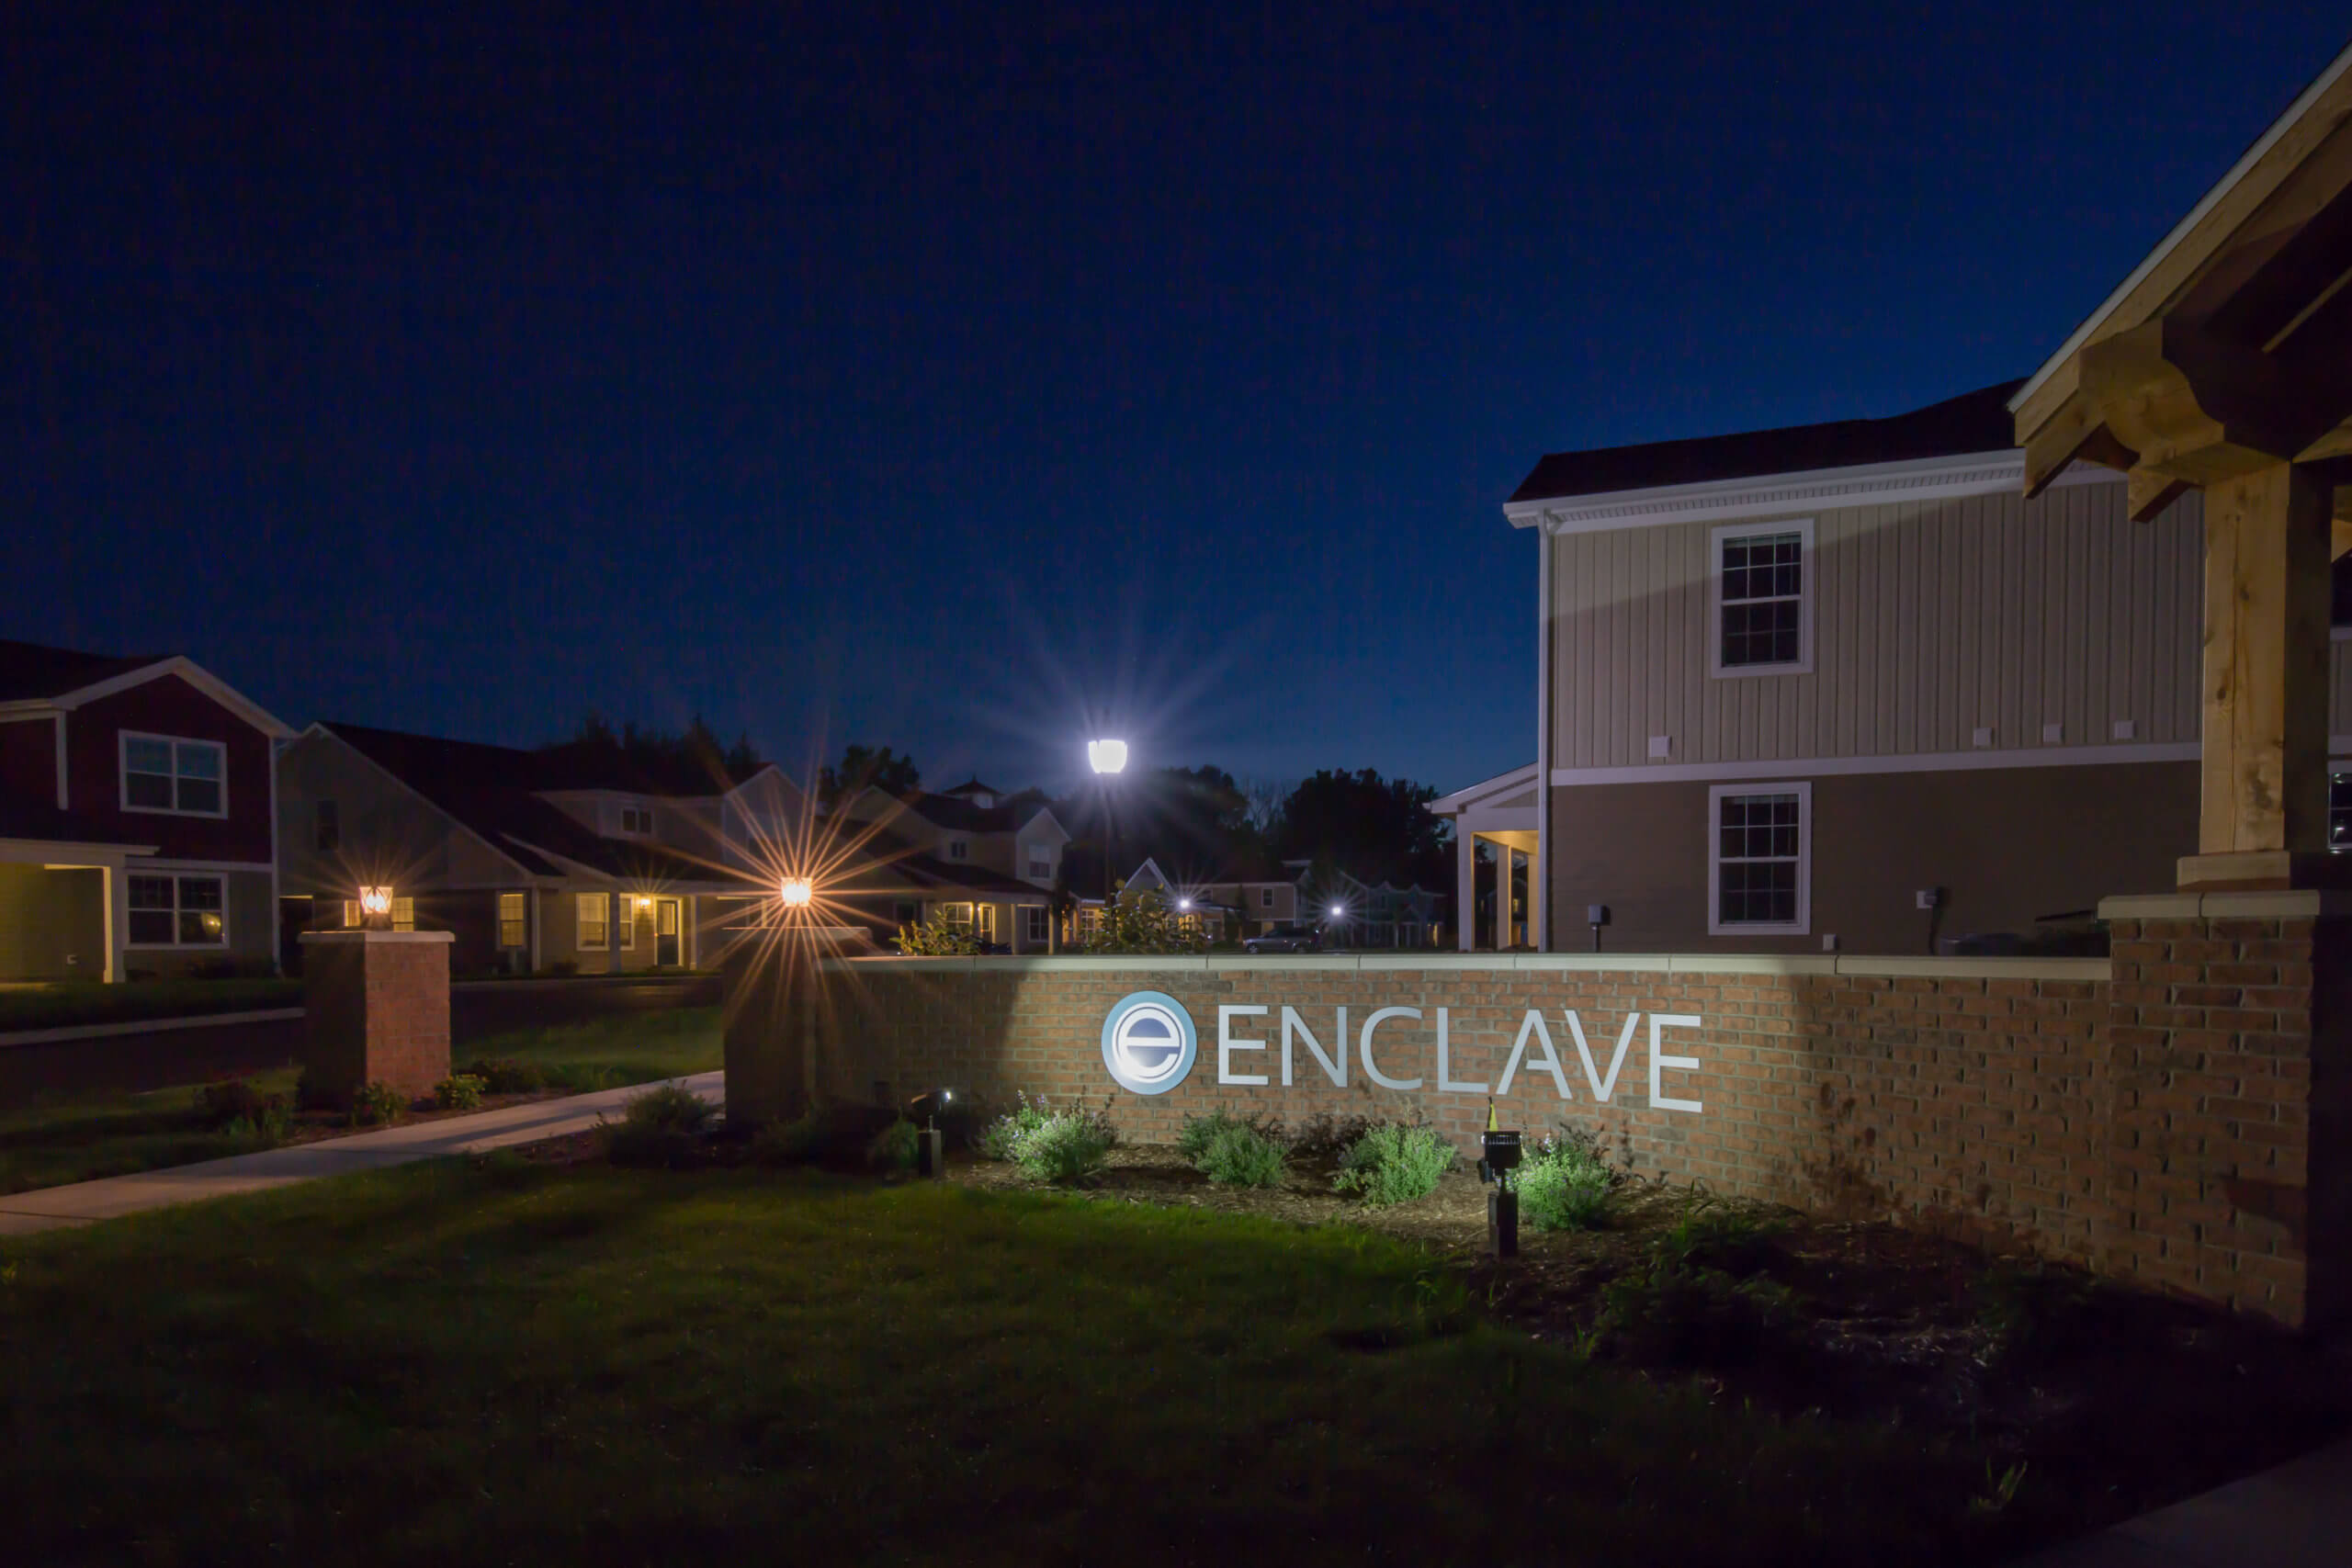 enclave entrance sign at night